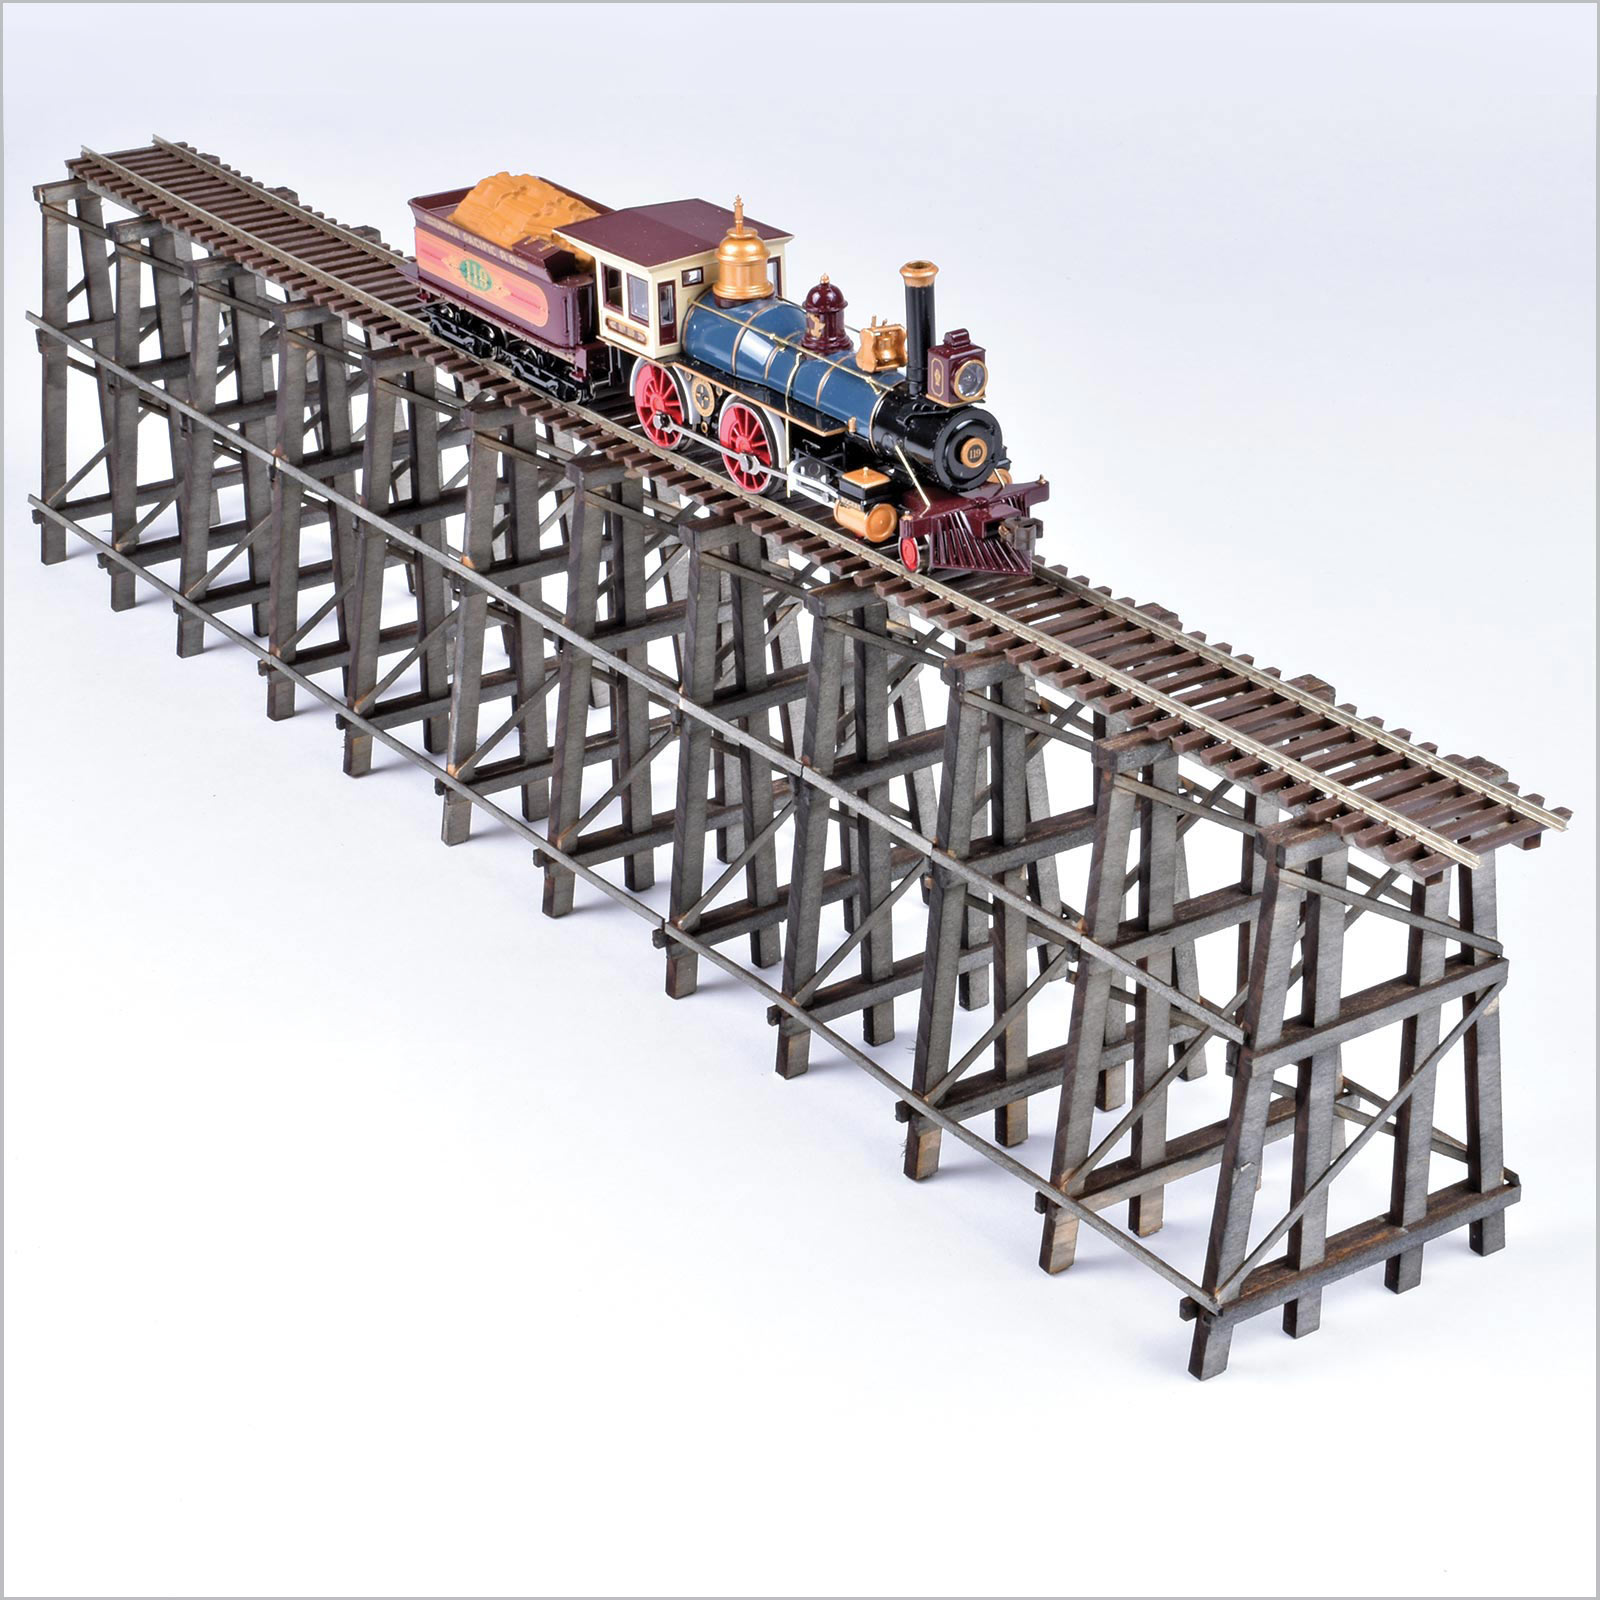 Wooden Trestle Bridge KIT